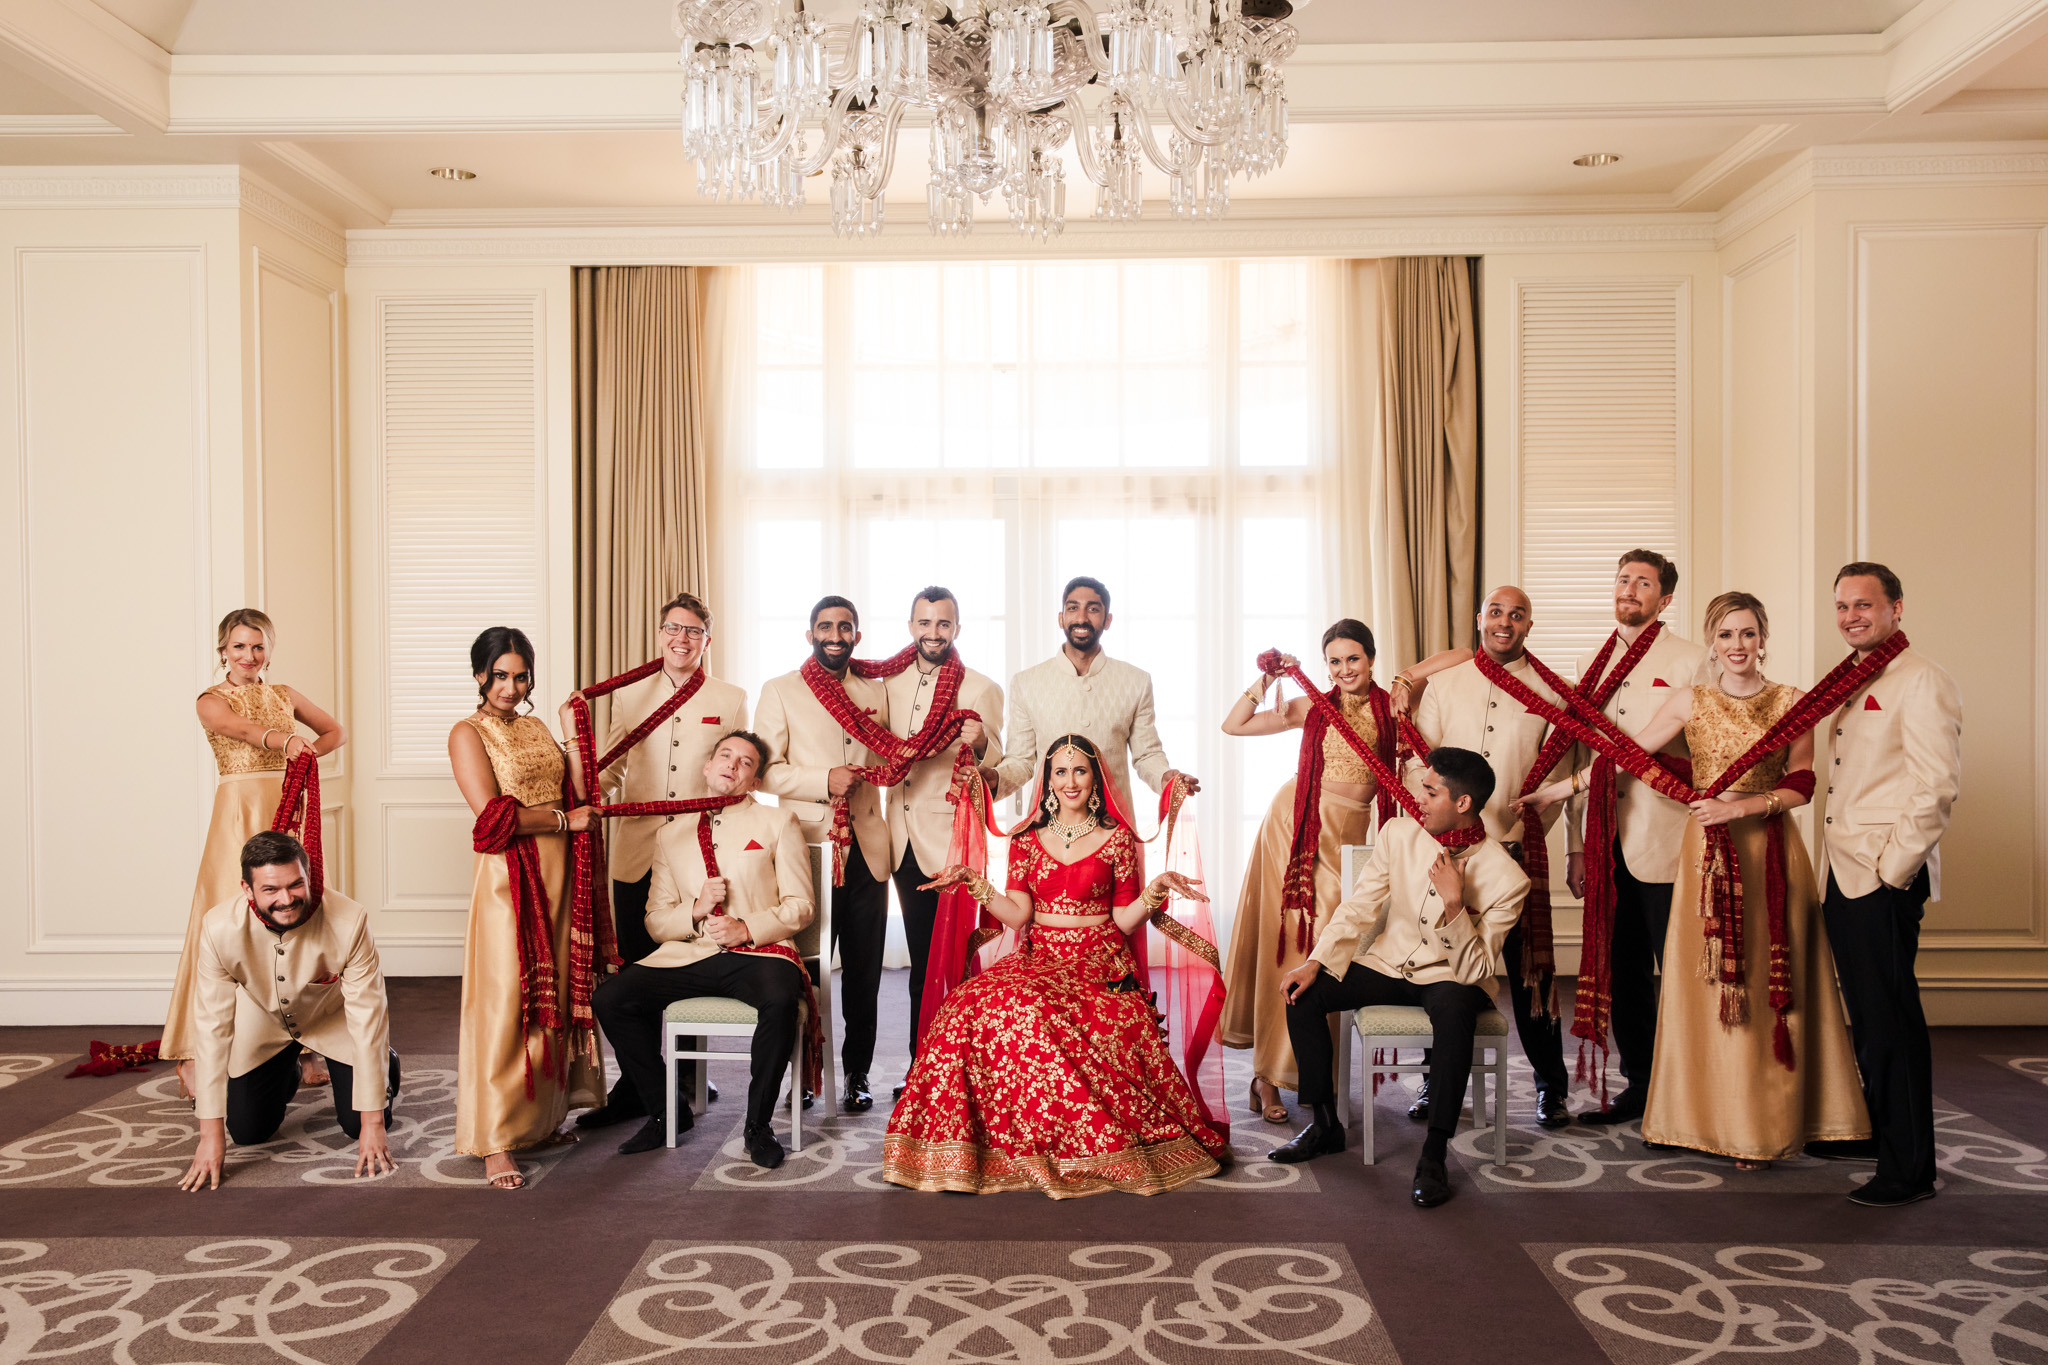 023 ritz carlton laguna niguel indian wedding party photography